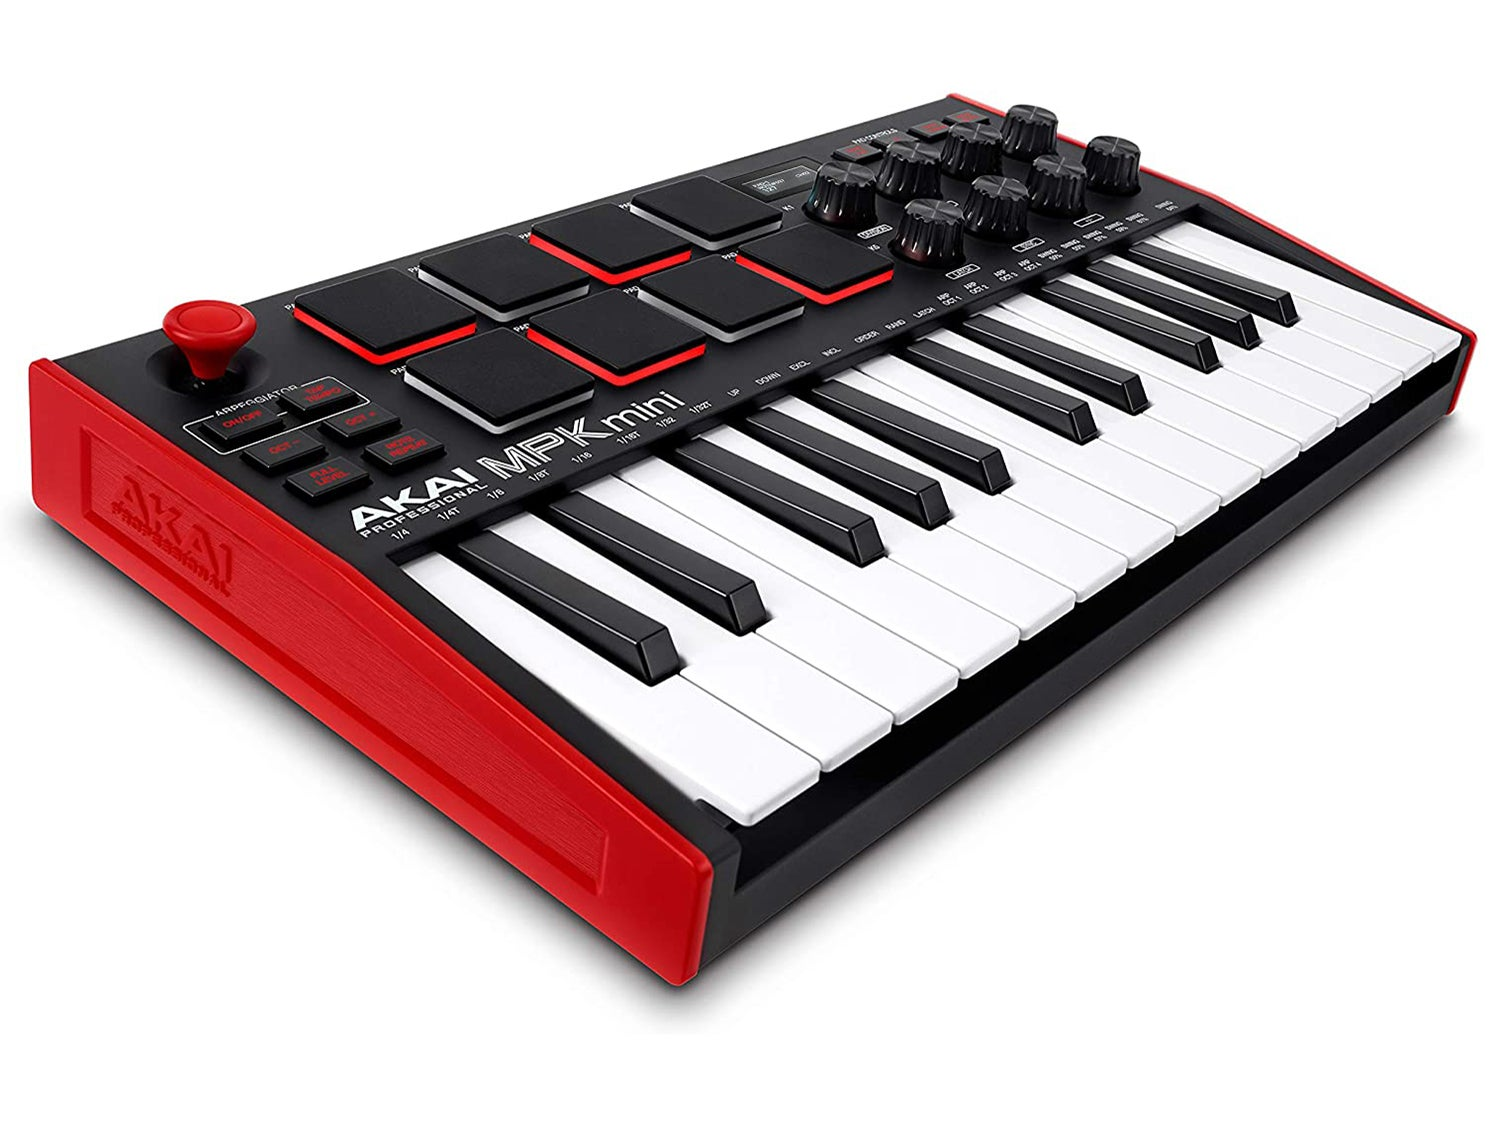 AKAI Professional MPK Mini MK3   25 Key USB MIDI Keyboard Controller With 8 Backlit Drum Pads, 8 Knobs and Music Production Software included